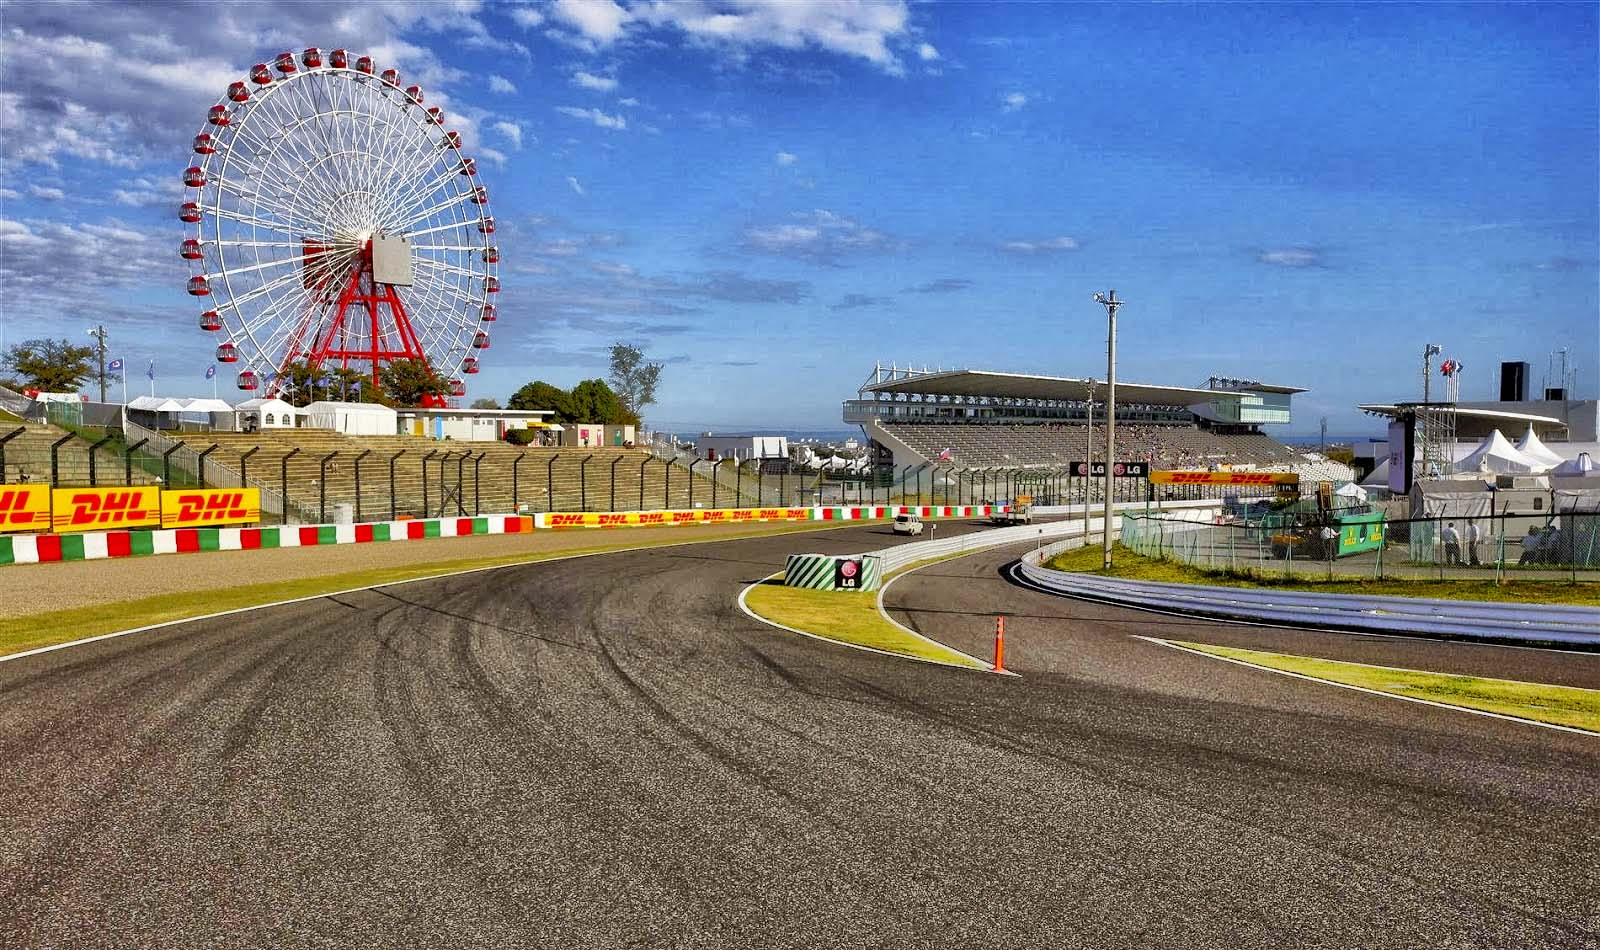 El Circuito de Suzuka, oficialmente Suzuka International Racing Course